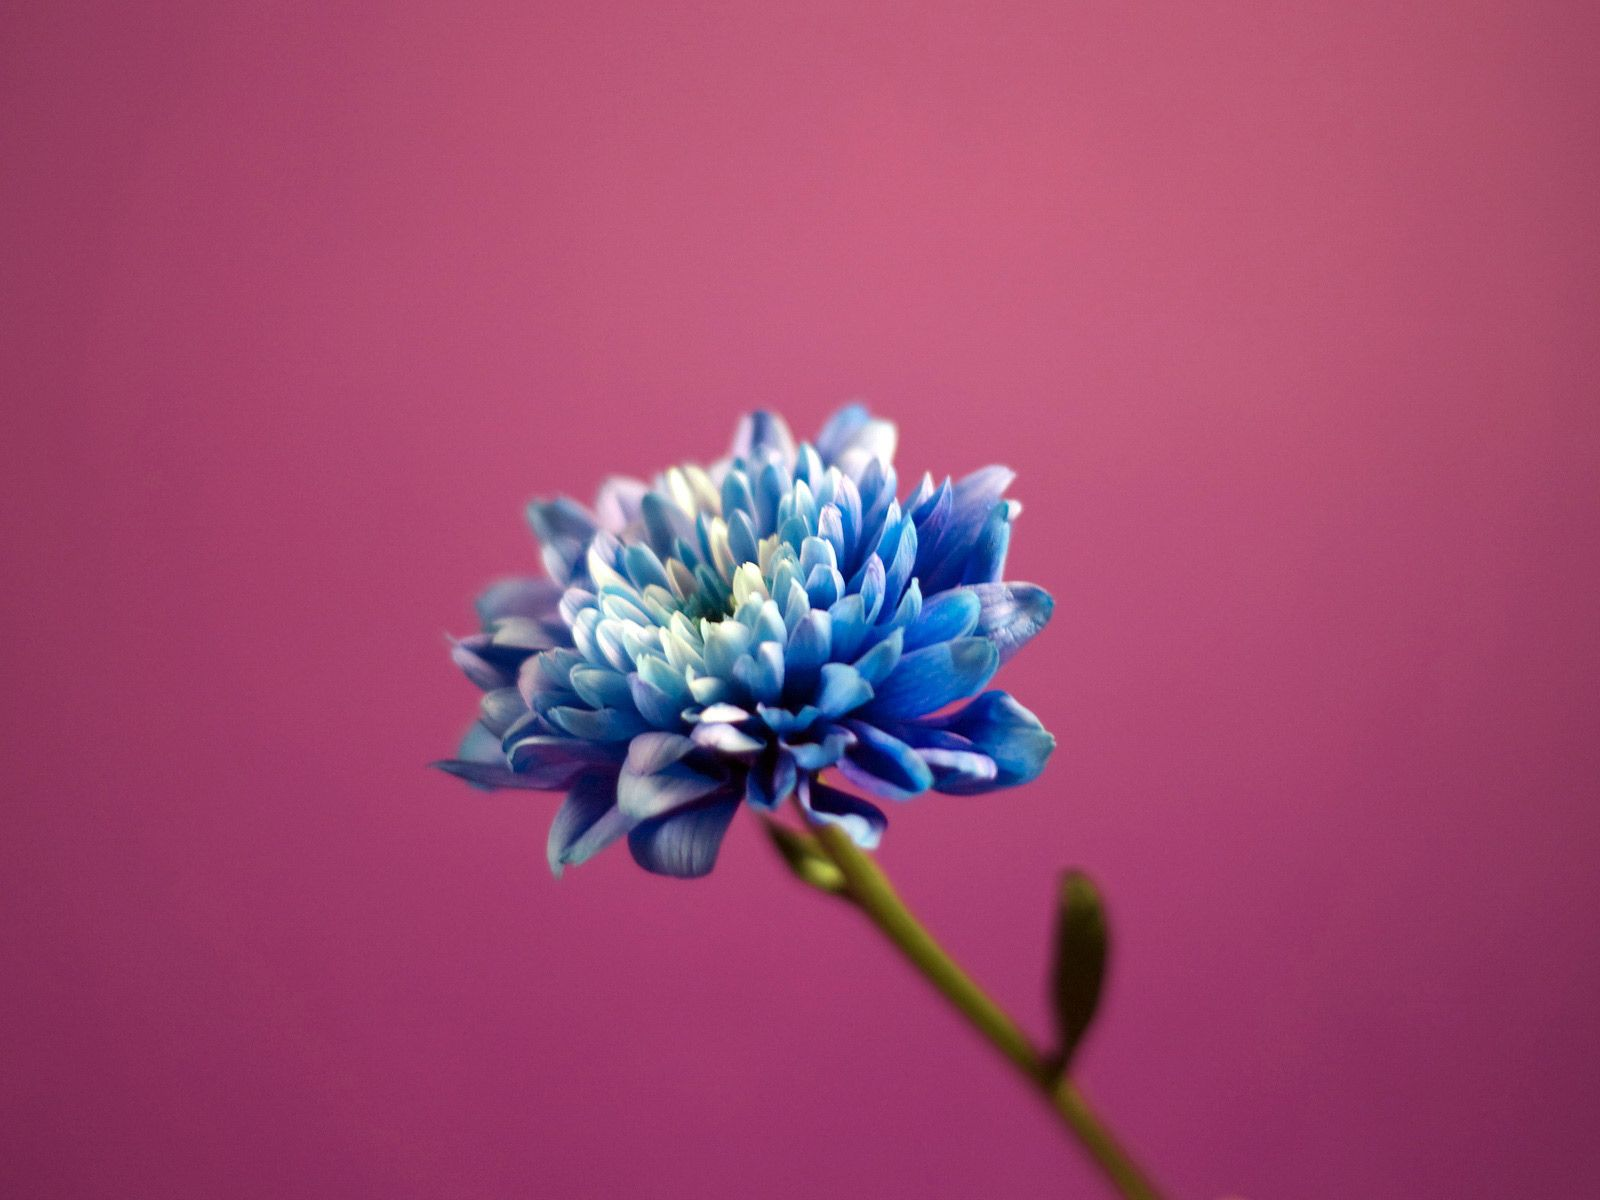 Blue Dahlia Blue Dahlia Flower Wallpaper Dazzling Dahlias